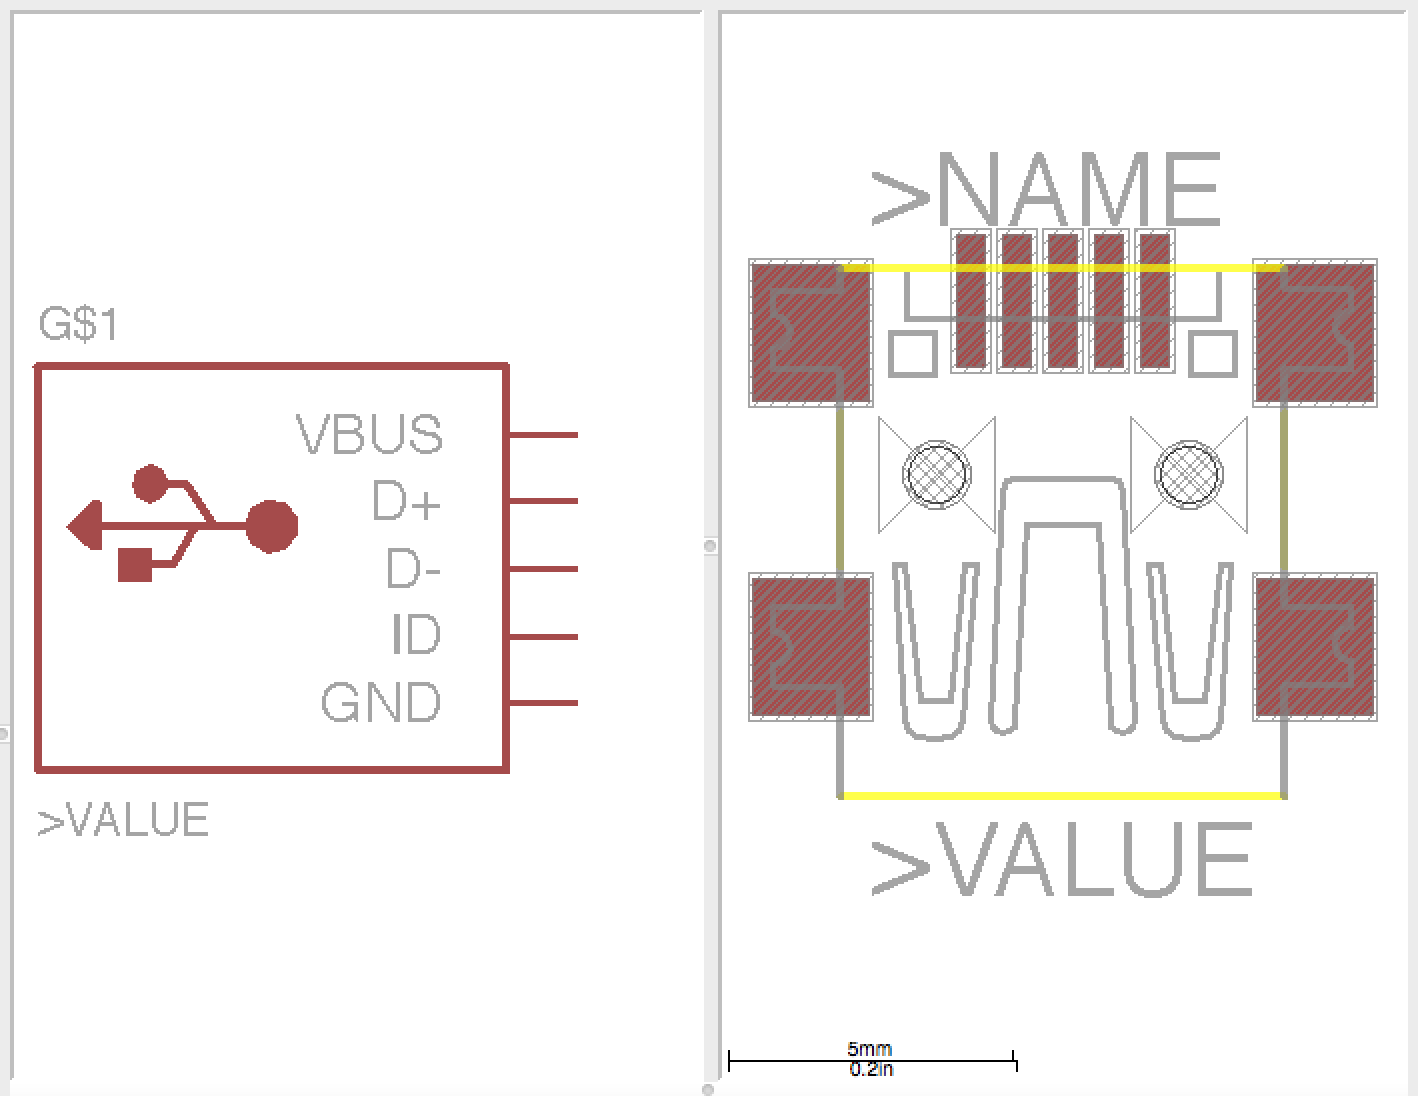 Week 4 Designing Circuit Boards Diy Devices How To Design Usb Mini B Connector